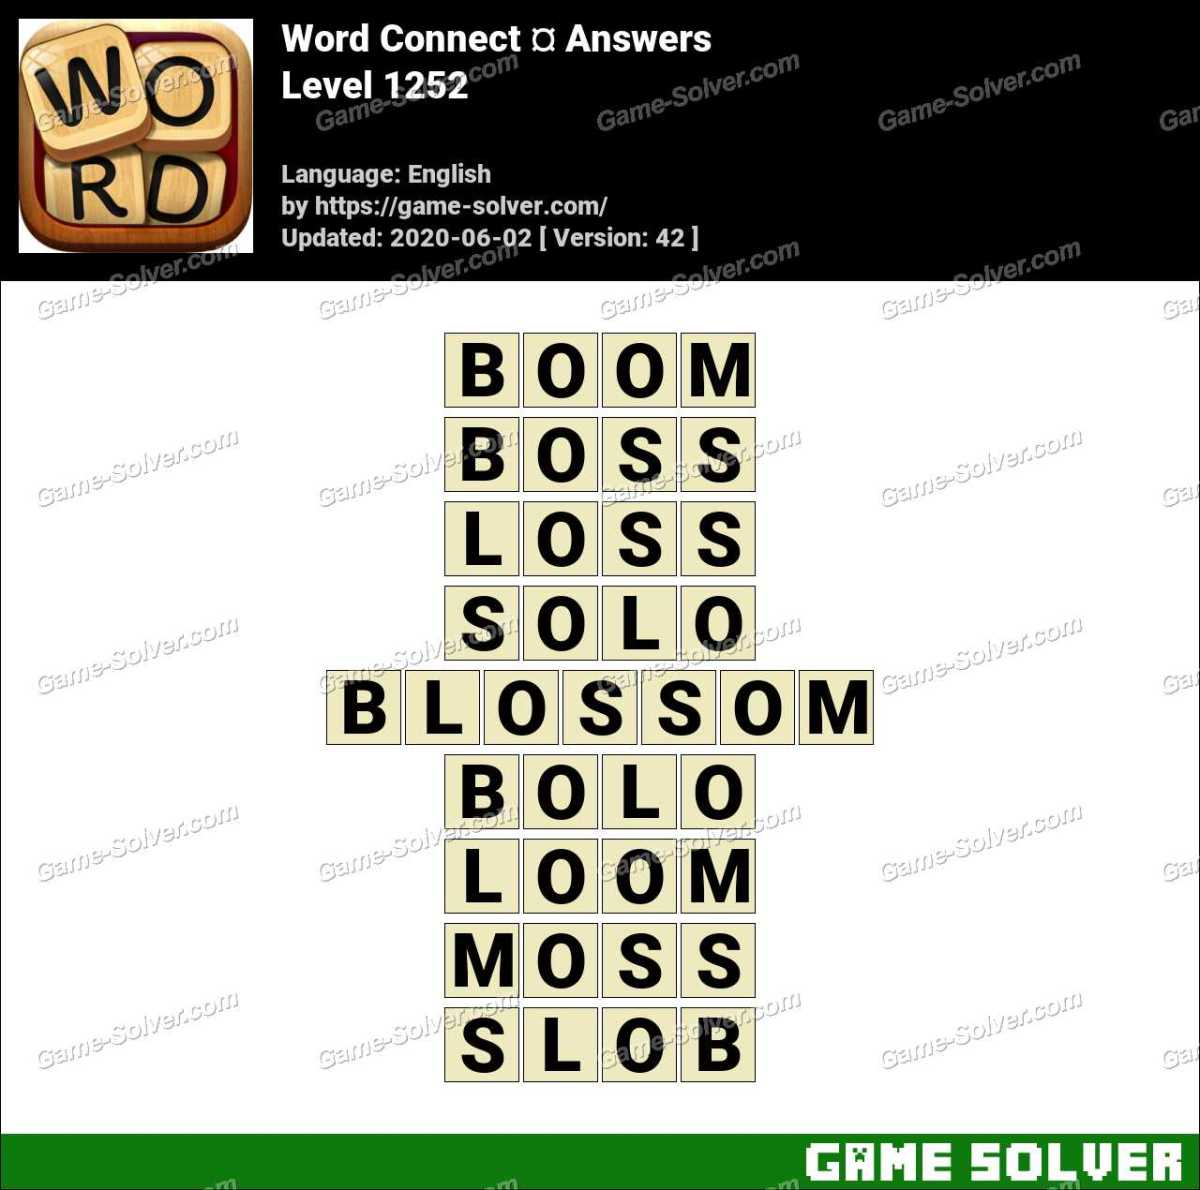 Word Connect Level 1252 Answers